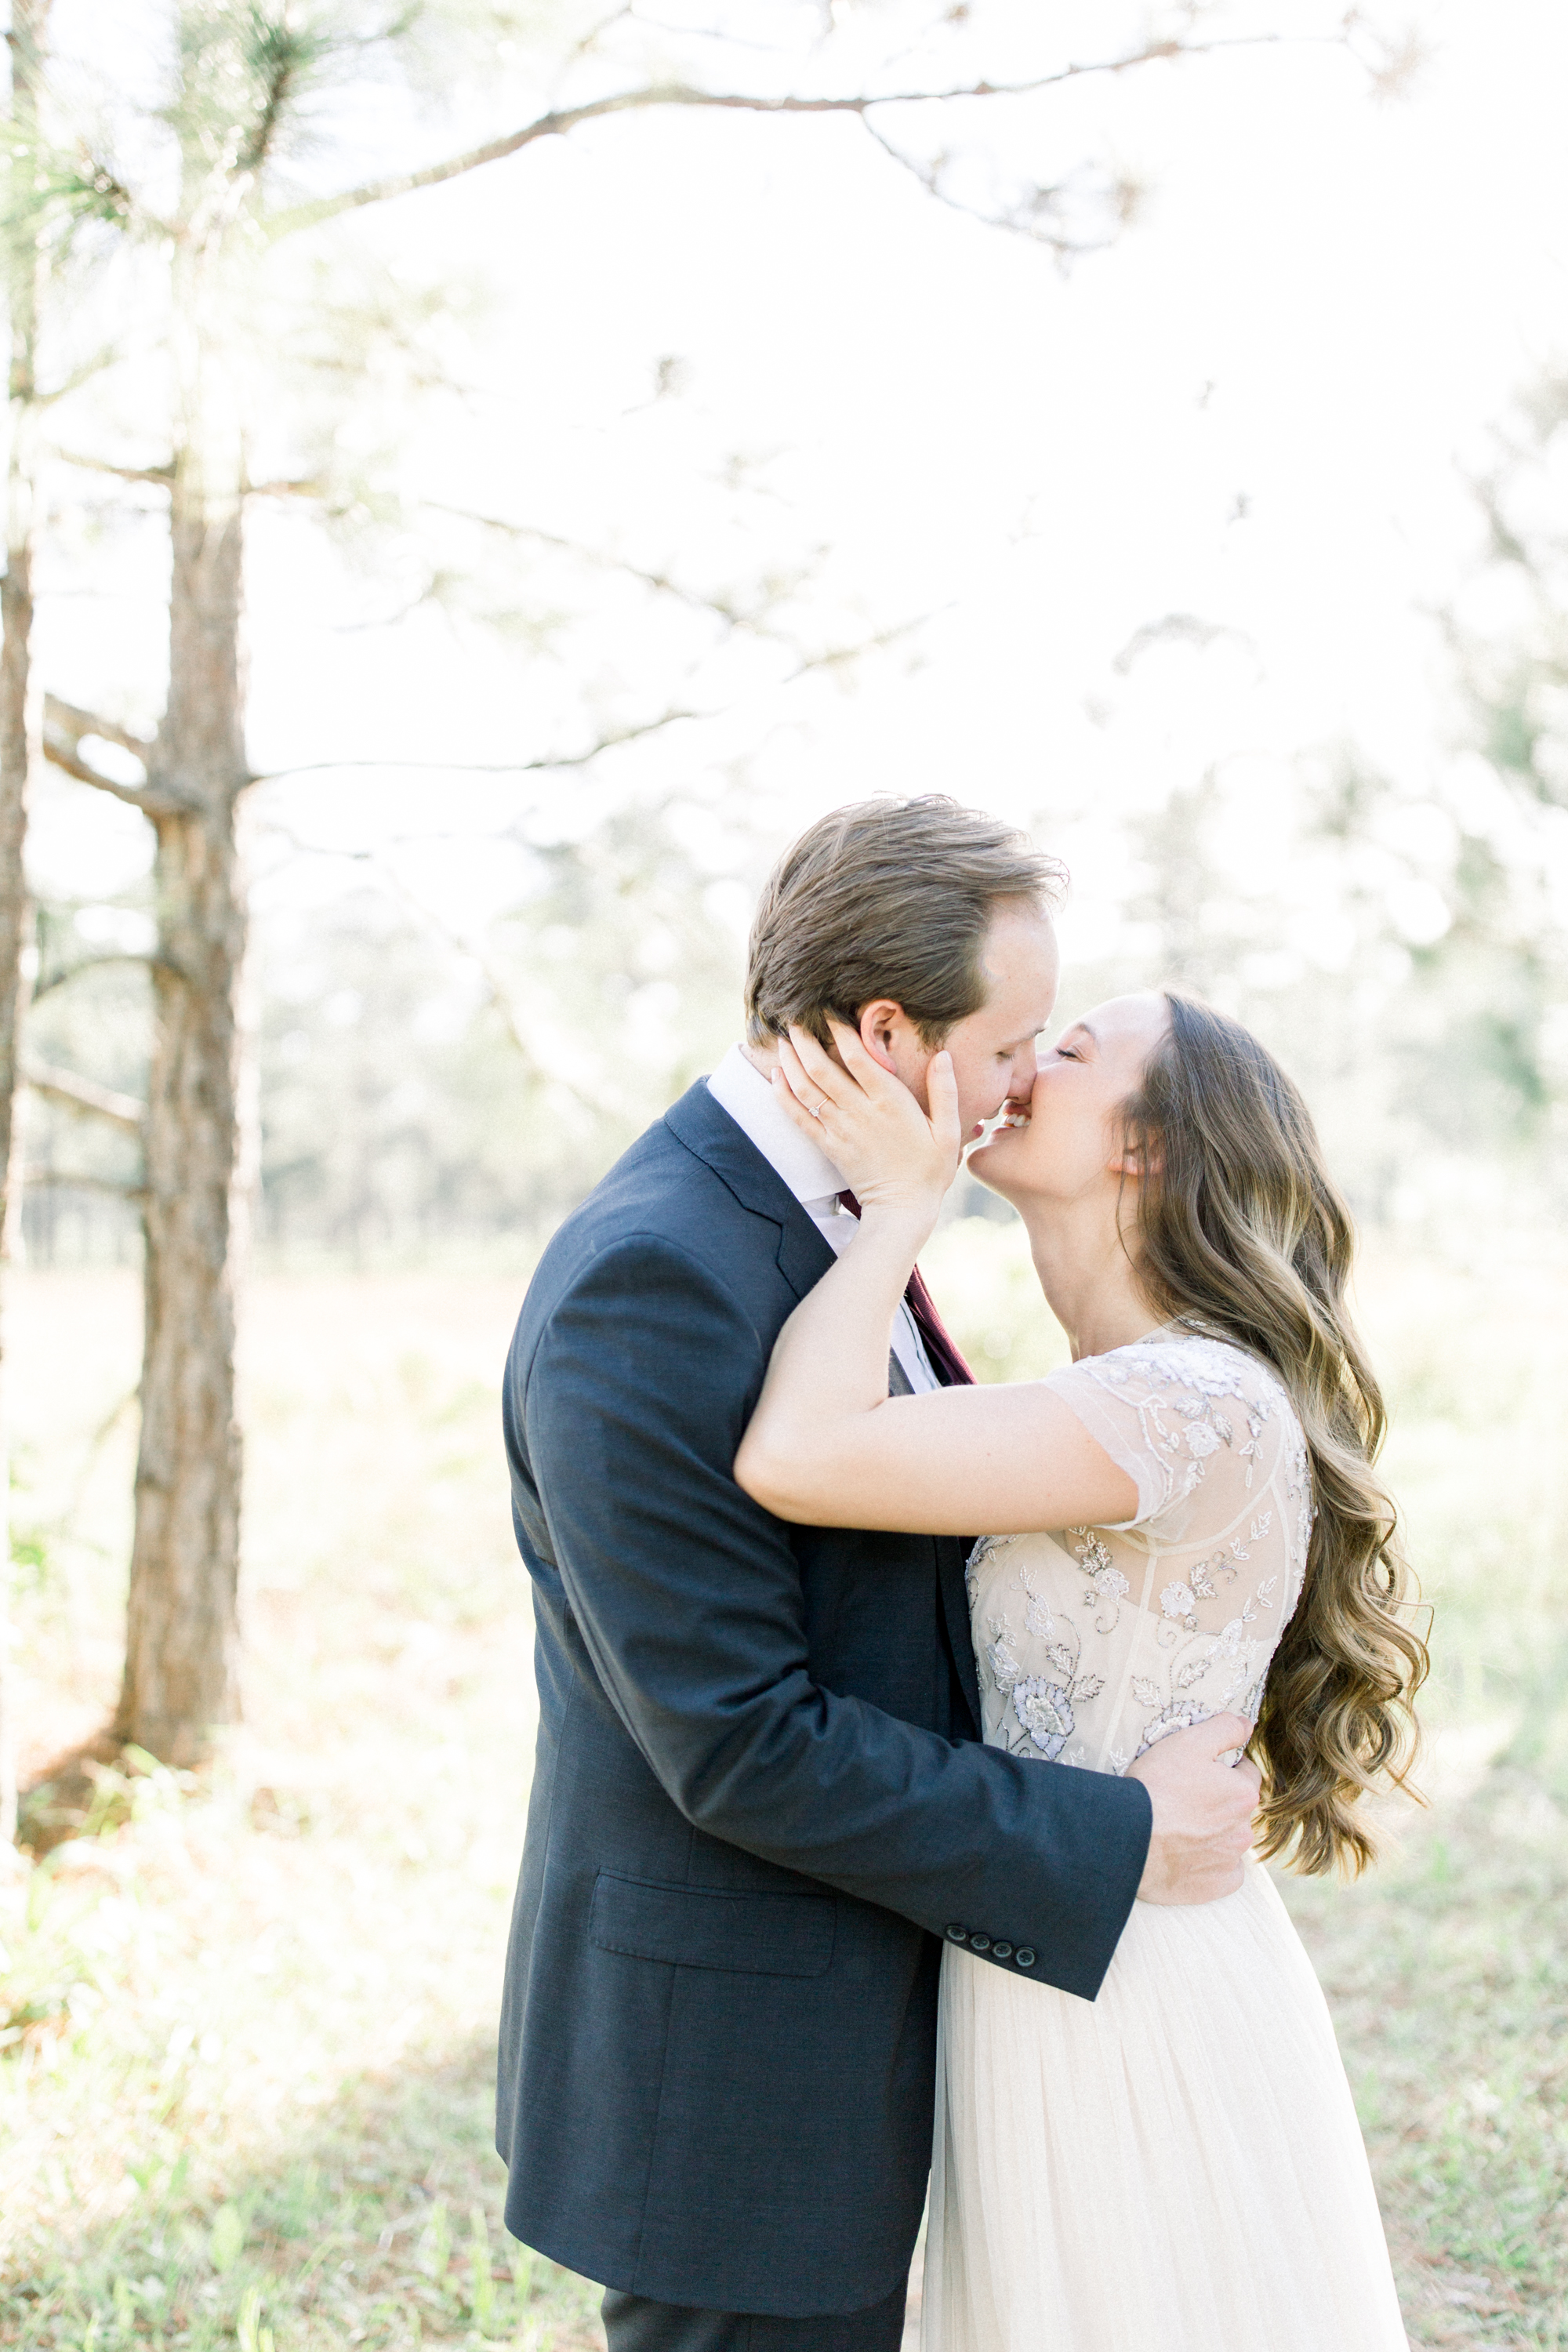 Greatly Exceeded Expectations - Britt LaShea Photography greatly exceeded our expectations for our engagement photos! She is professional and has the best eye! I highly recommend!- Victoria Theiels